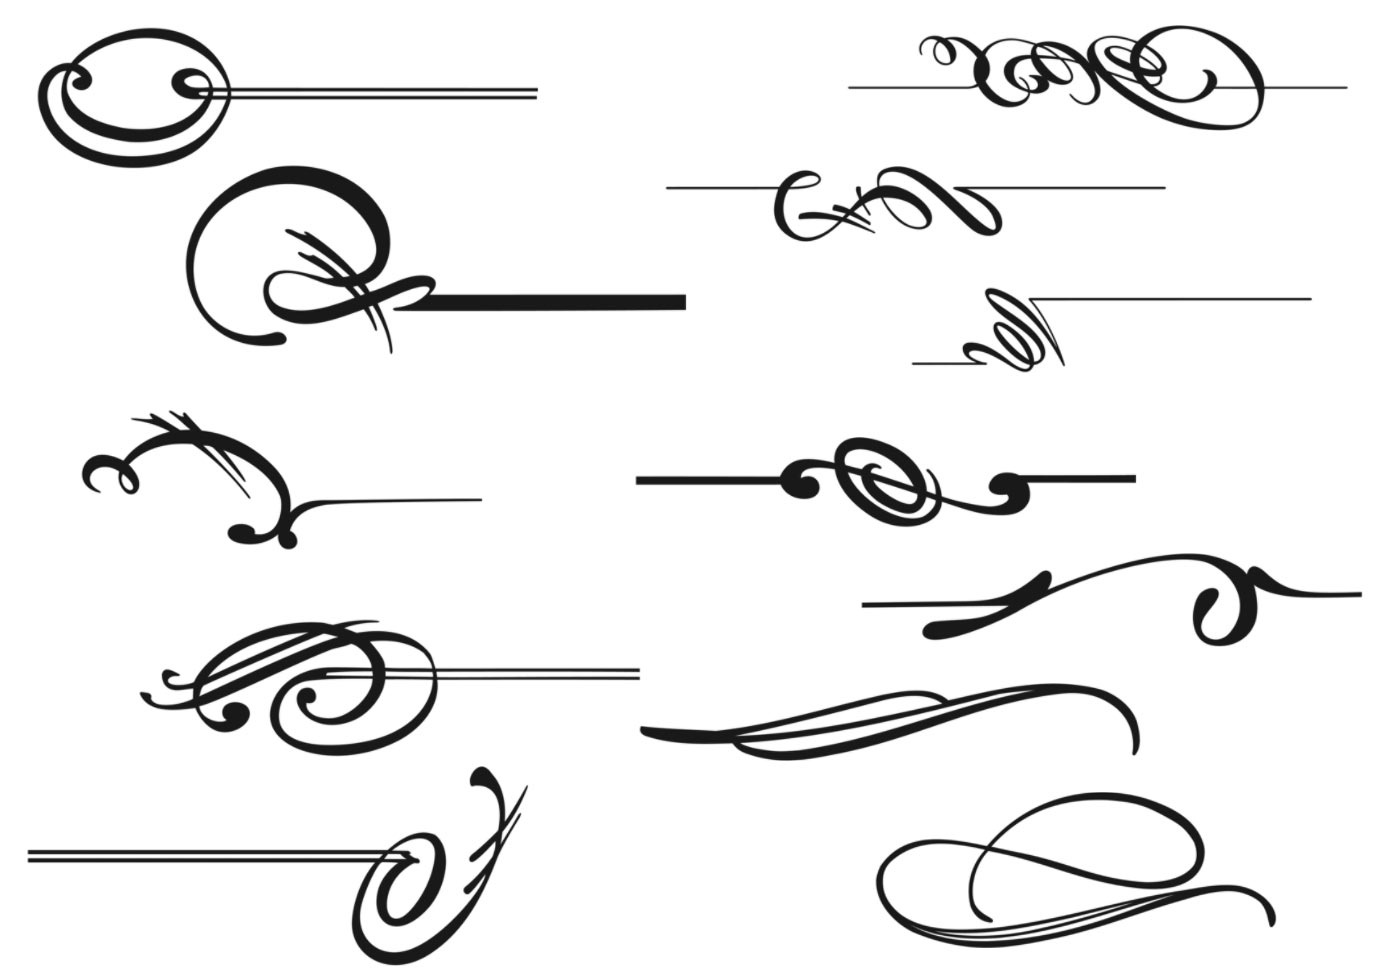 Calligraphy Brushes Pack